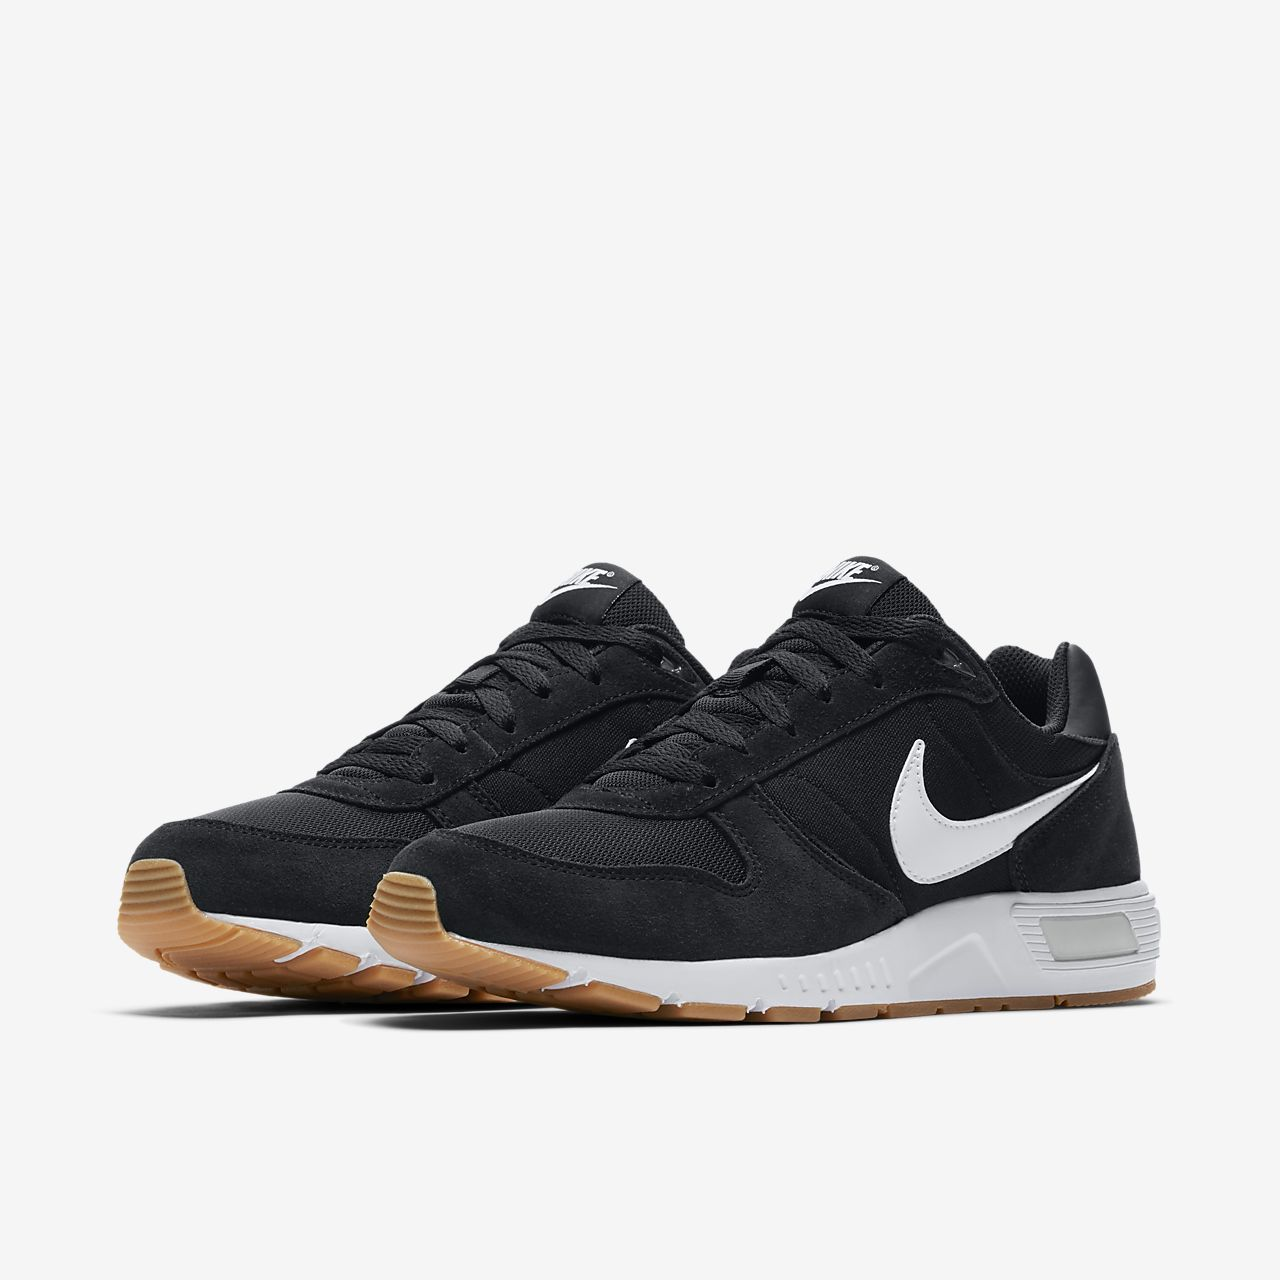 promo code a7a9b fe8f7 Low Resolution Nike Nightgazer Men s Shoe Nike Nightgazer Men s Shoe